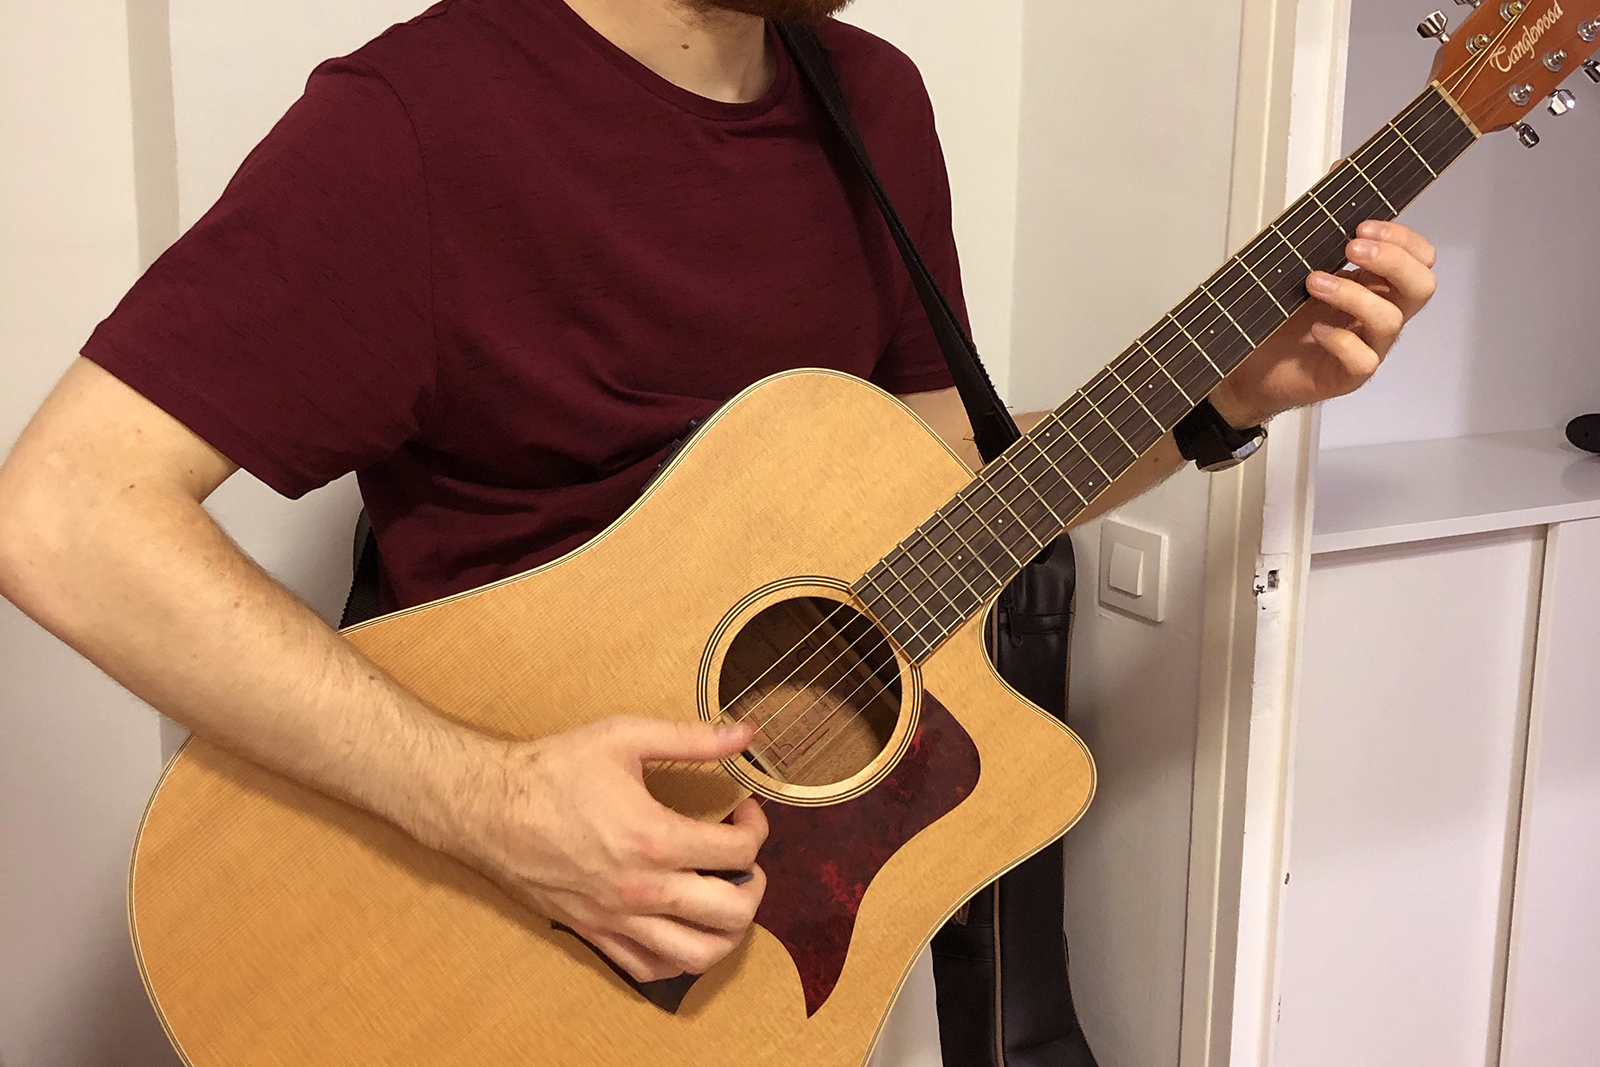 Man playing an acoustic guitar. Playing a musical instrument can have physical, mental, and emotional benefits.